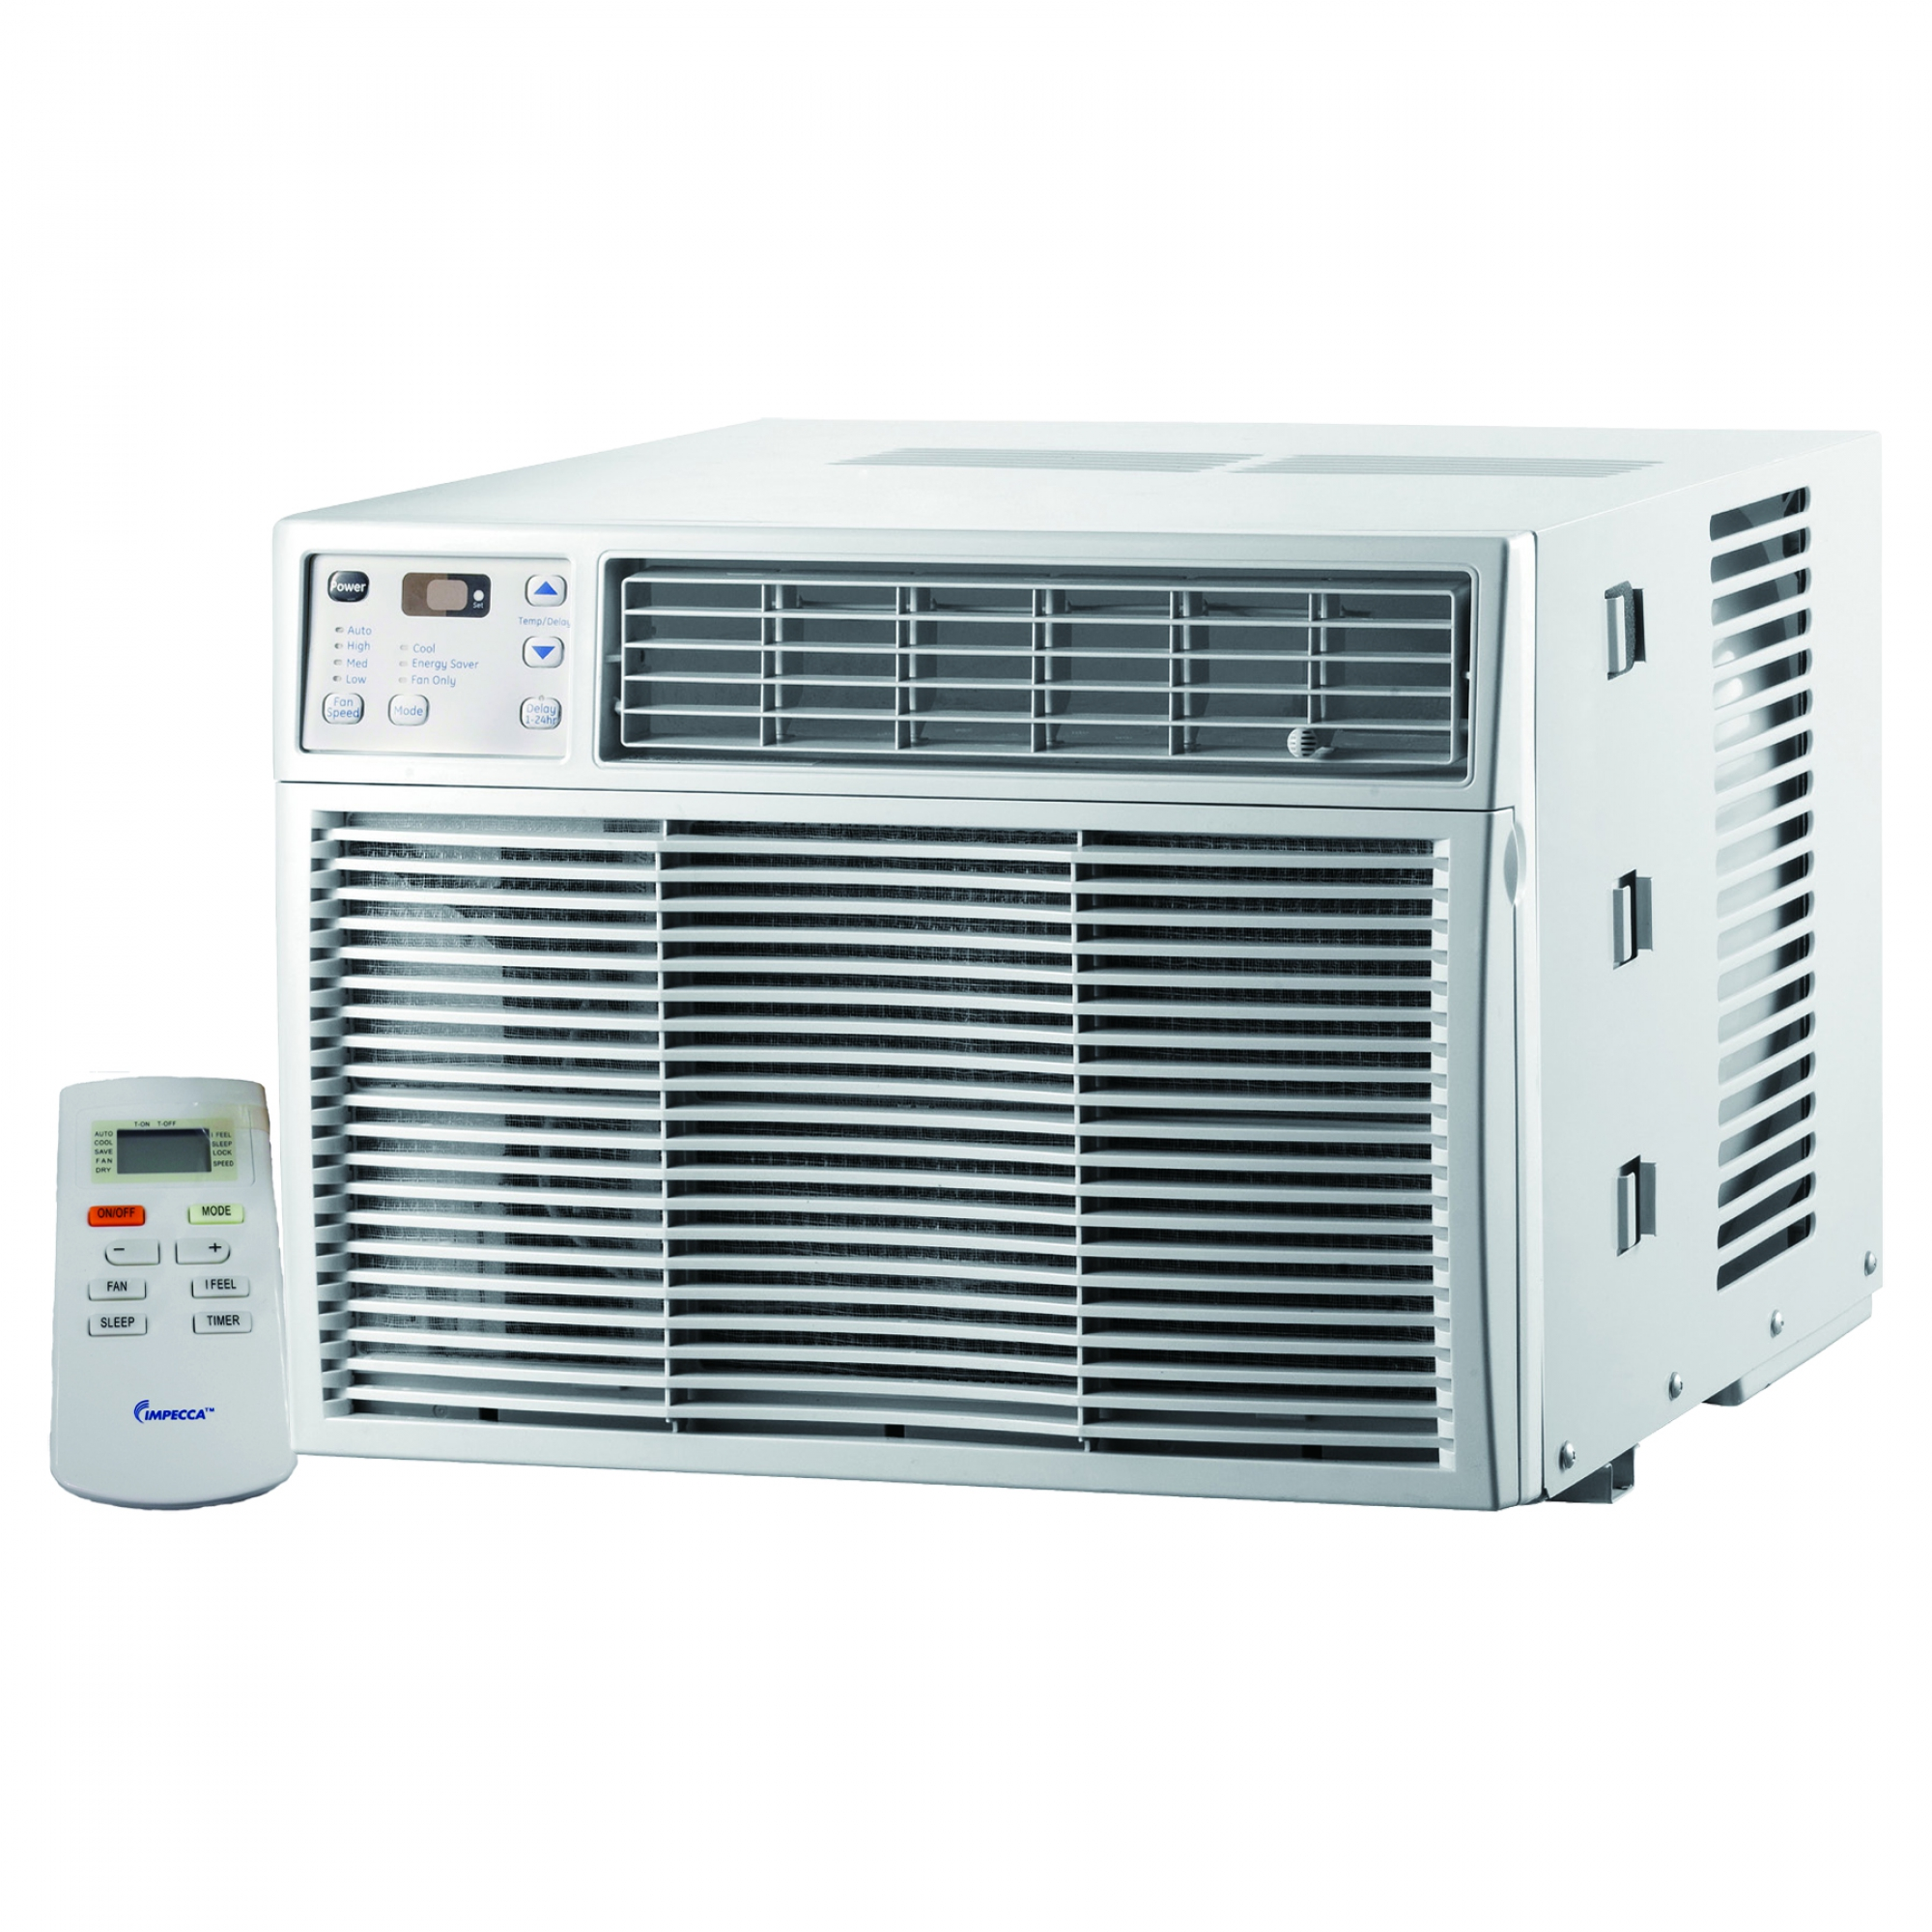 up to 350 10.8 EER Energy Star : 2014 Air Flow (m3/h) (High) : 210 #8A3420